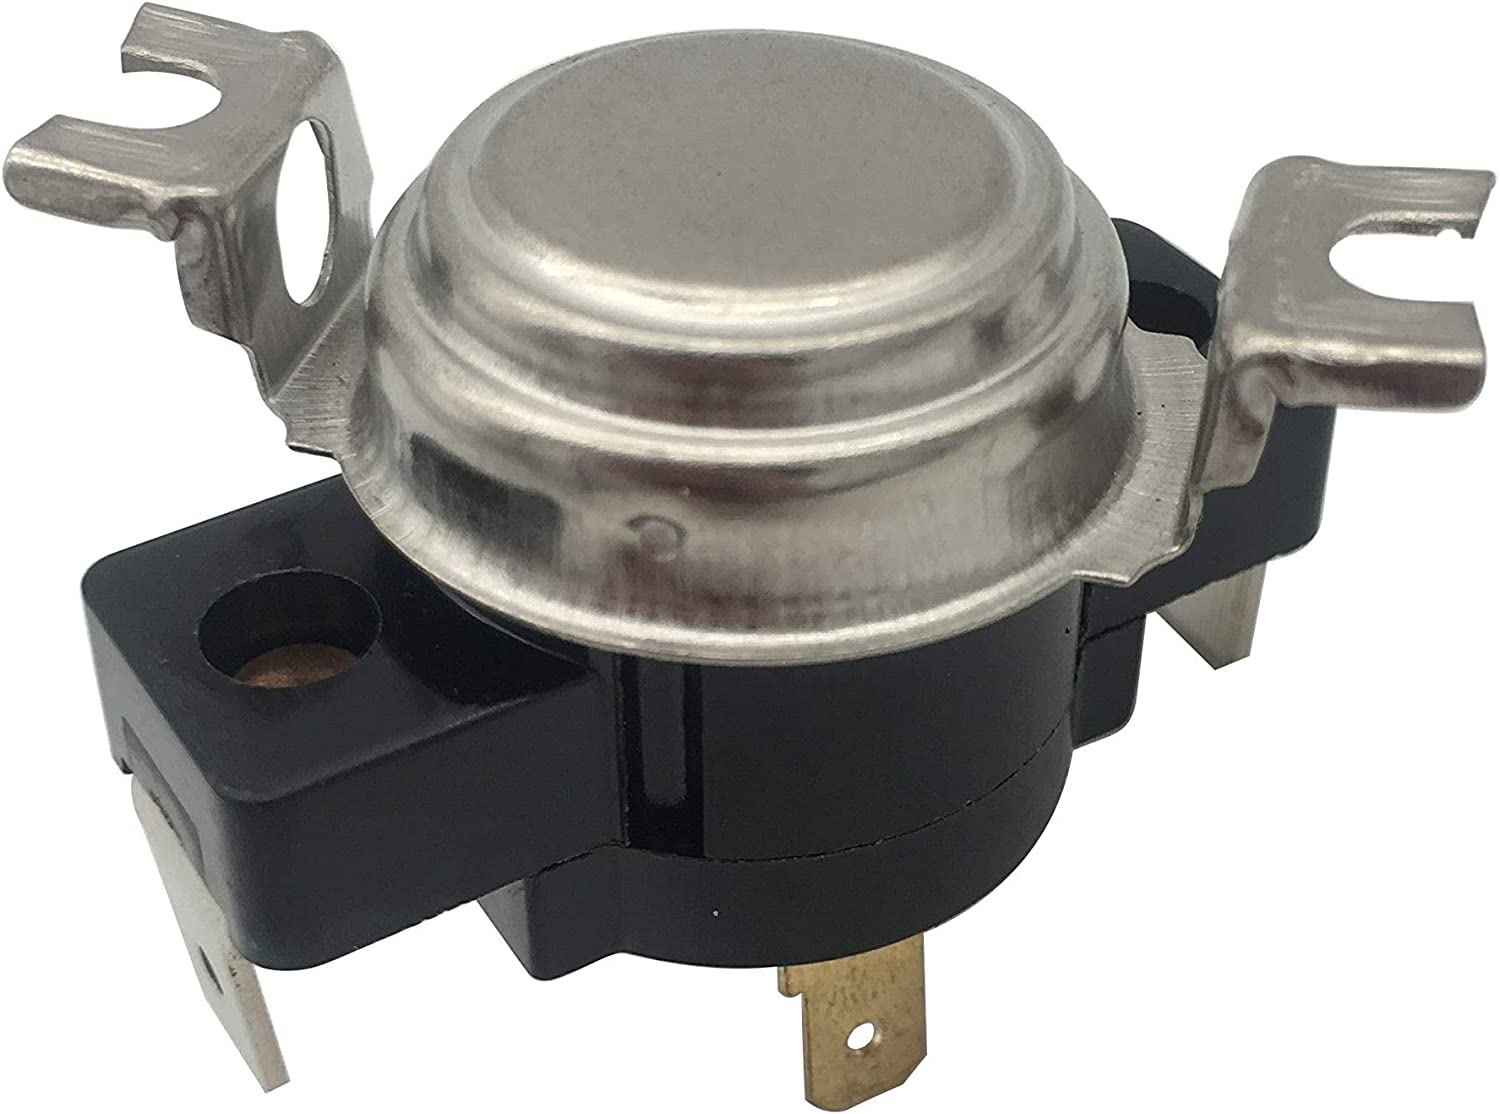 NEW High Limit Thermostat Switch Replacement for GE Clothes Dryer WE4M181